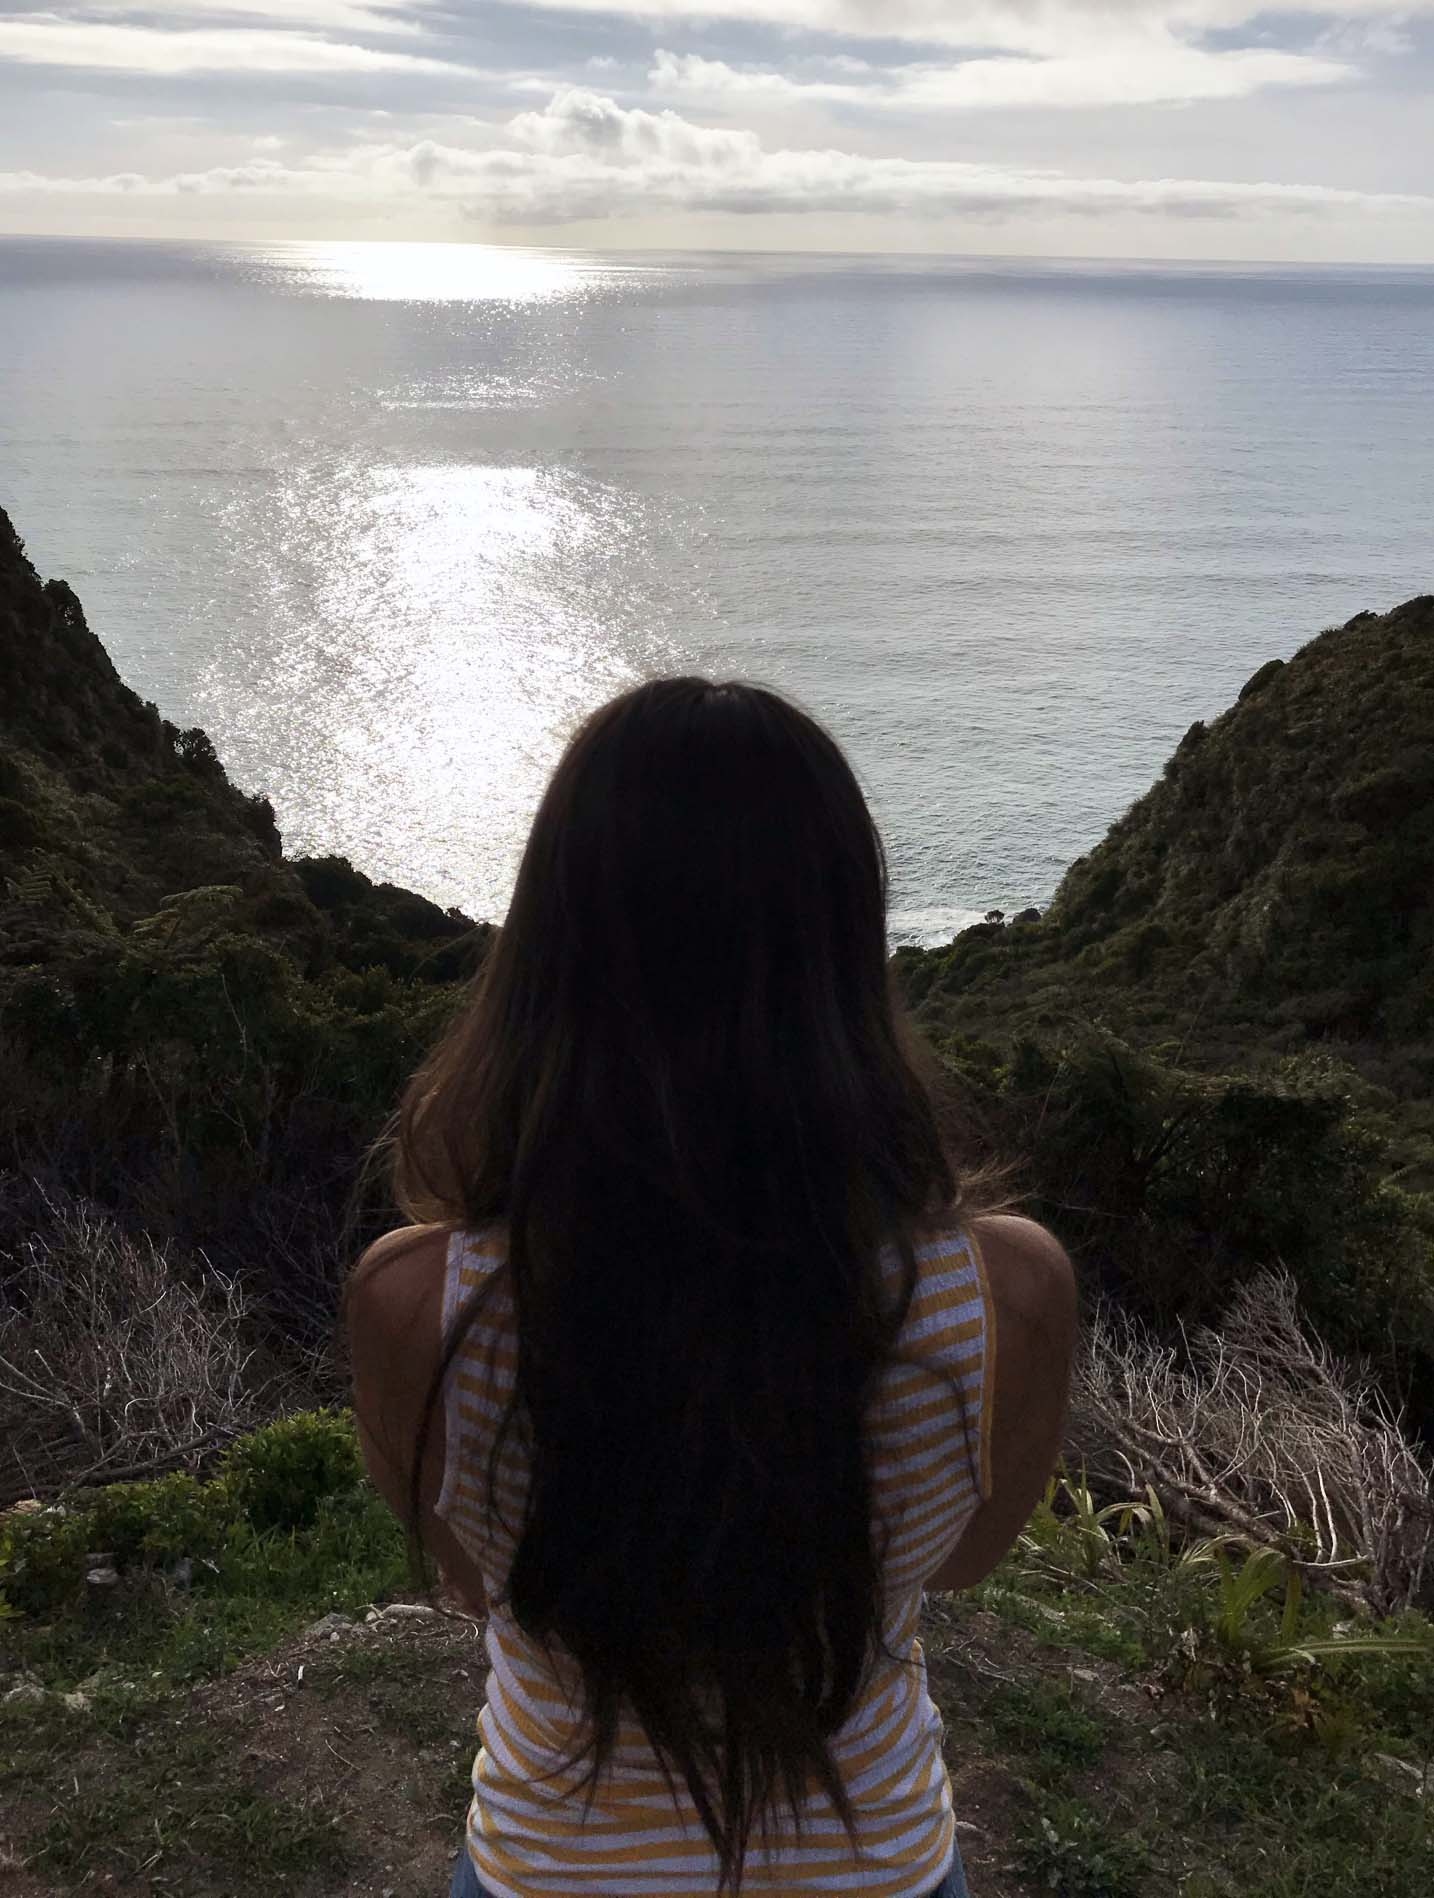 It took a break away from everyday life for Ashley to overcome burnout and continue writing. In the photo, Ashley stares out at the sea.